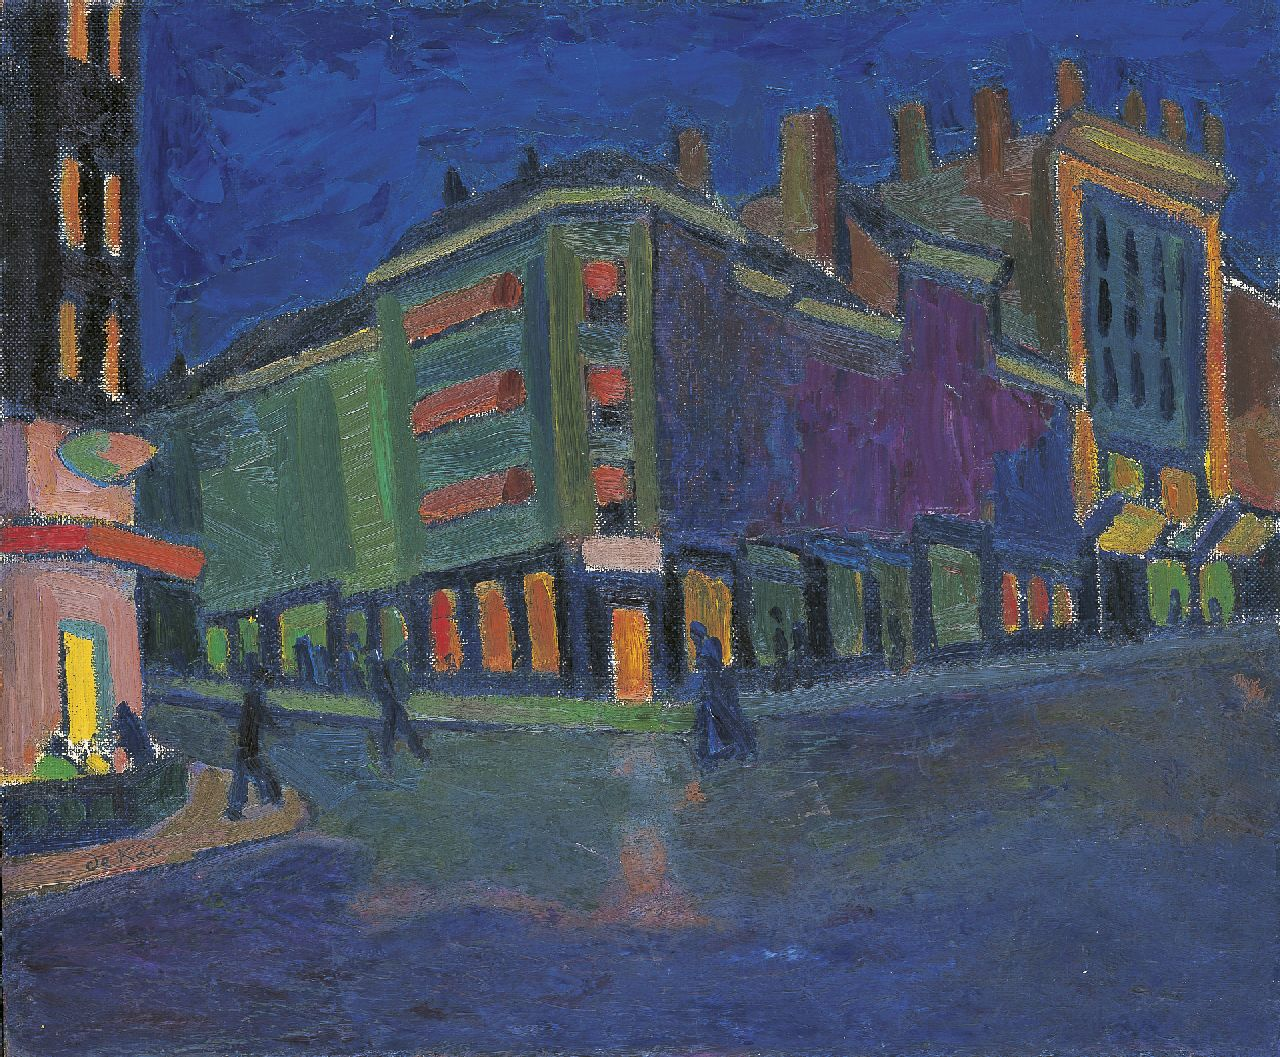 Kat A.-P. de | Anne-Pierre de Kat, City by night, oil on canvas laid down on board 50.0 x 60.1 cm, signed l.l.